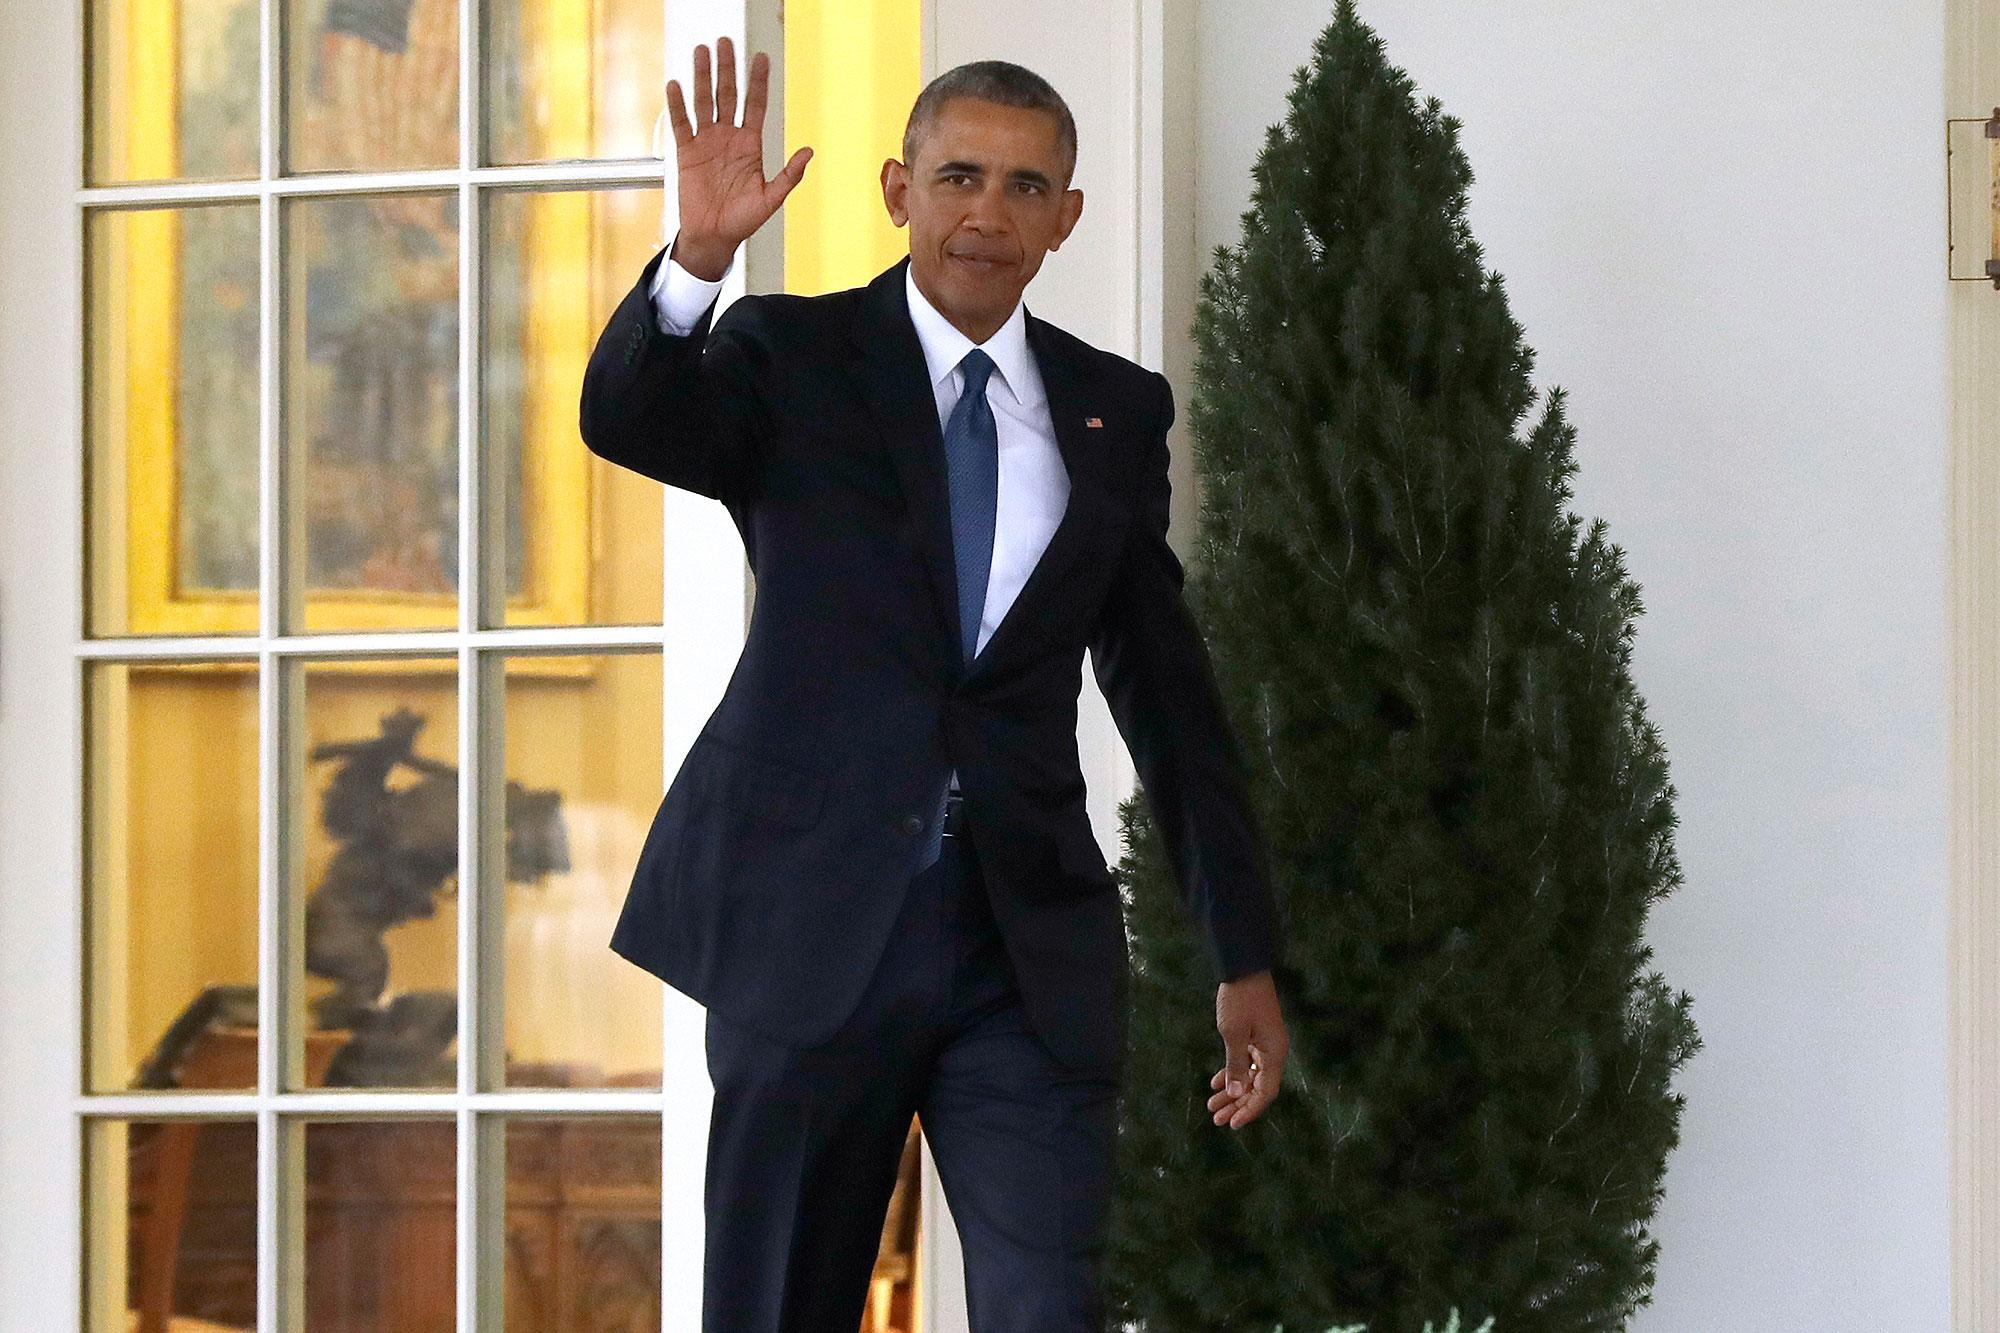 Former President Obama Returns to Personal Twitter Handle: 'Is This Thing Still On?'